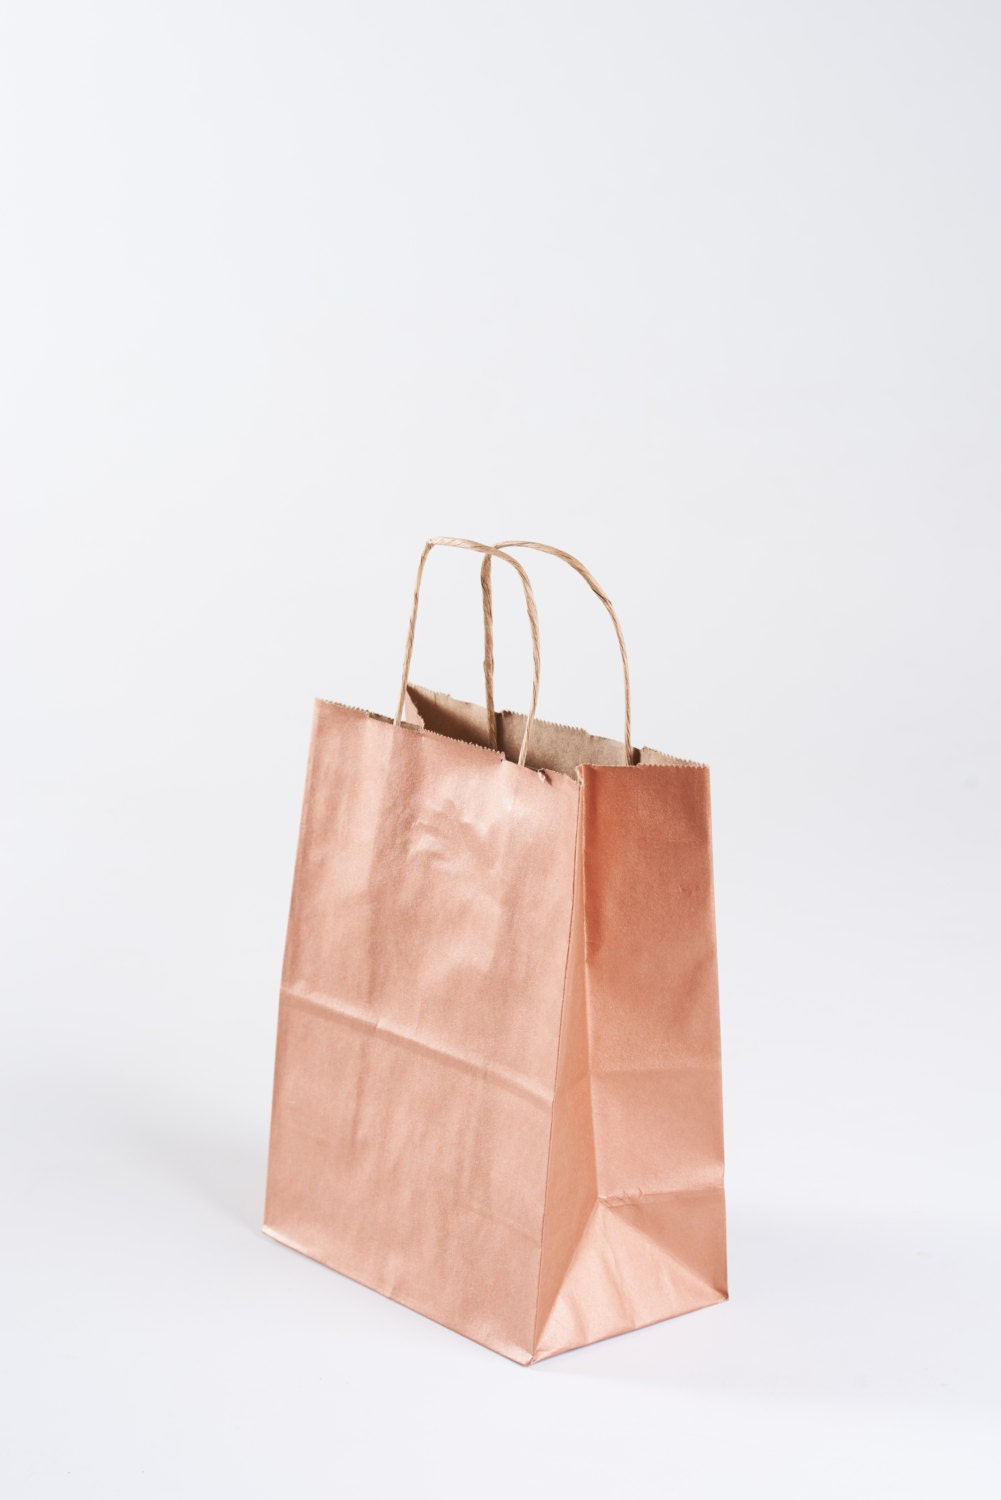 75 Rose Gold Gift Bags With Handles For Wedding Guests